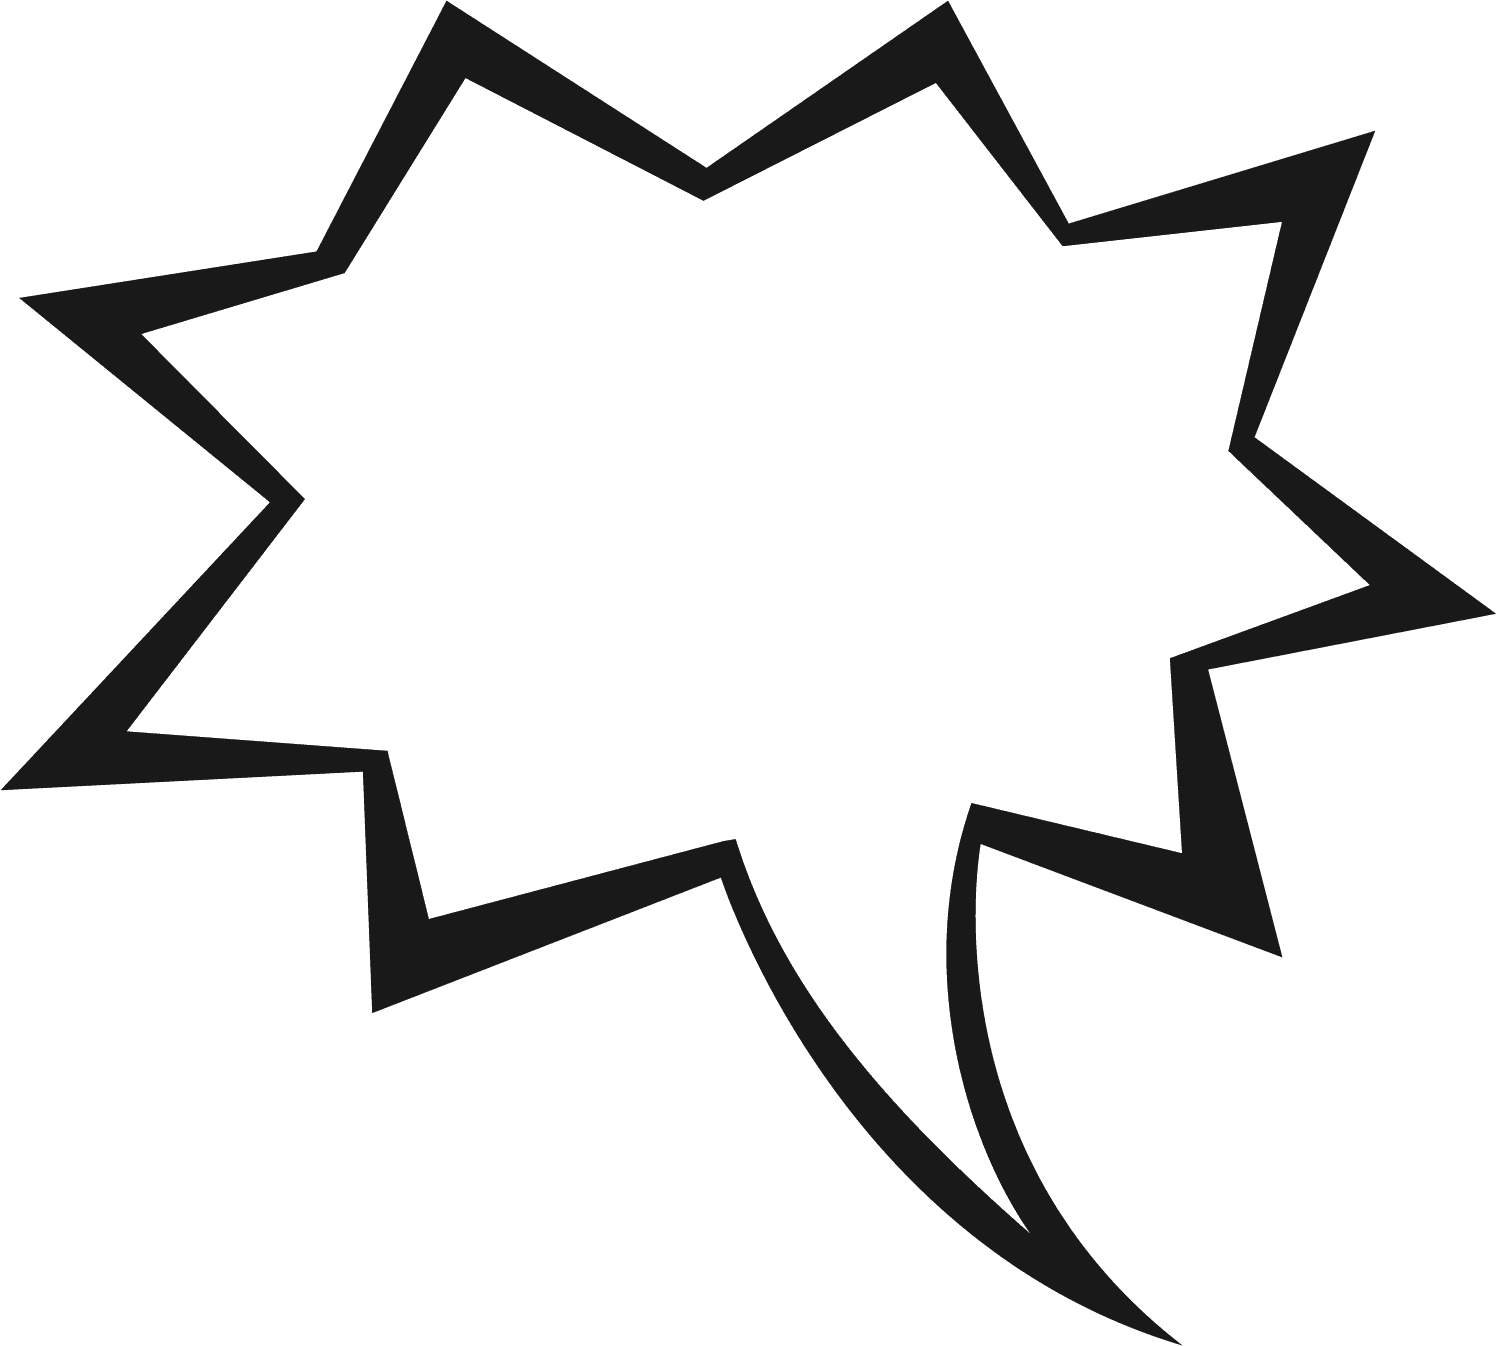 1496x1346 Person Thinking With Thought Bubble Free Clipart 3